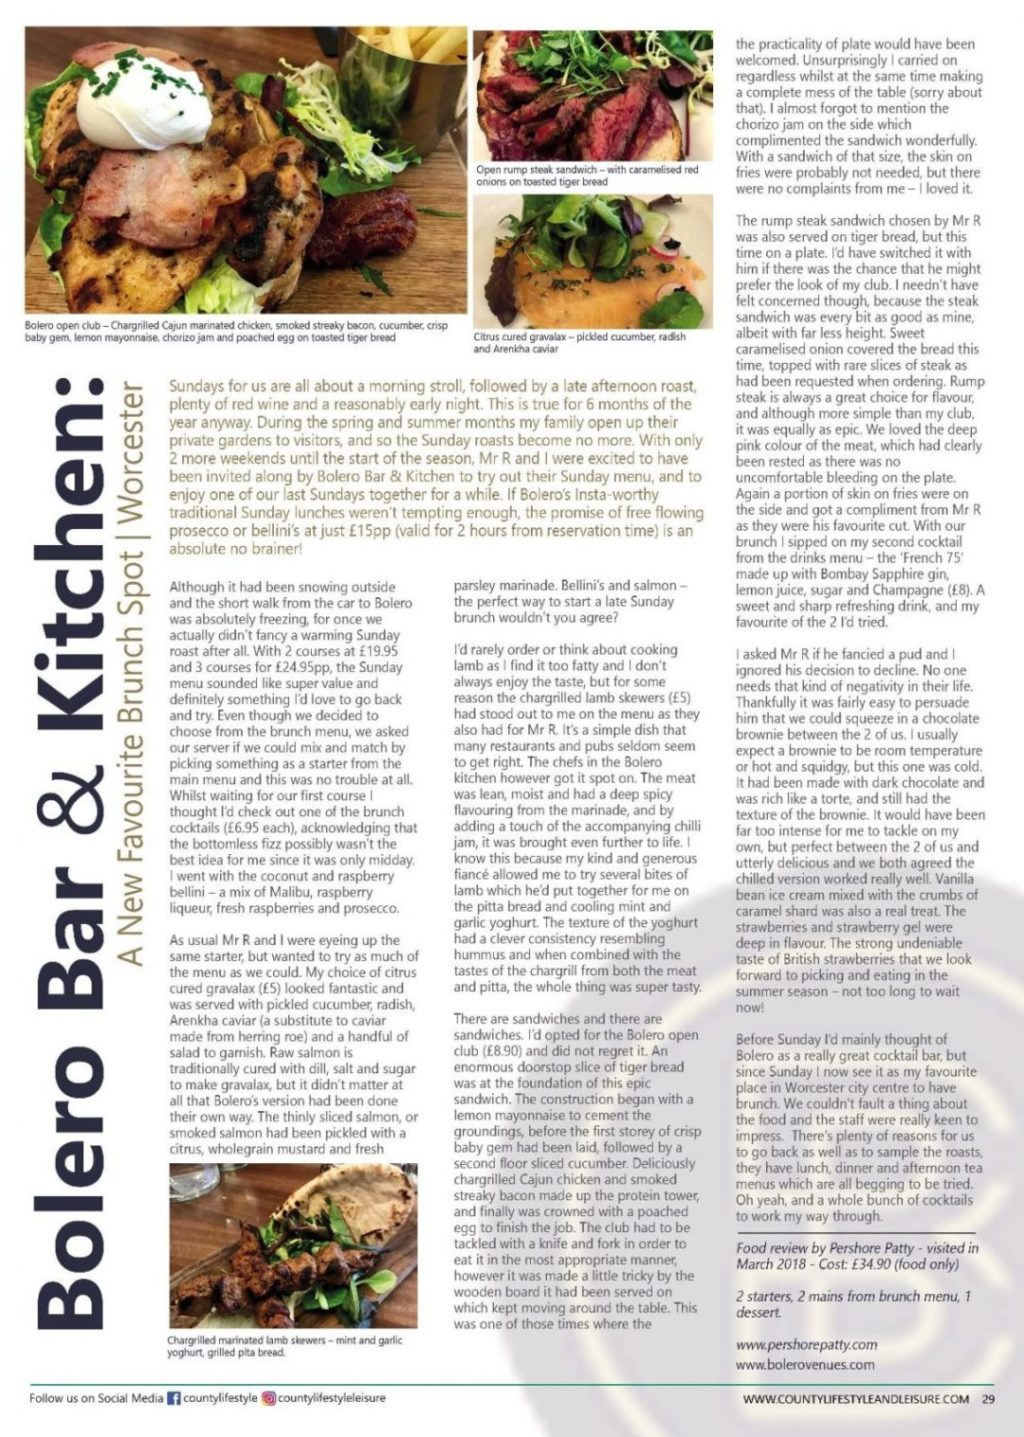 County Lifestyle April 2018 PAGE 29 - Pershore Patty - Bolero-page-001